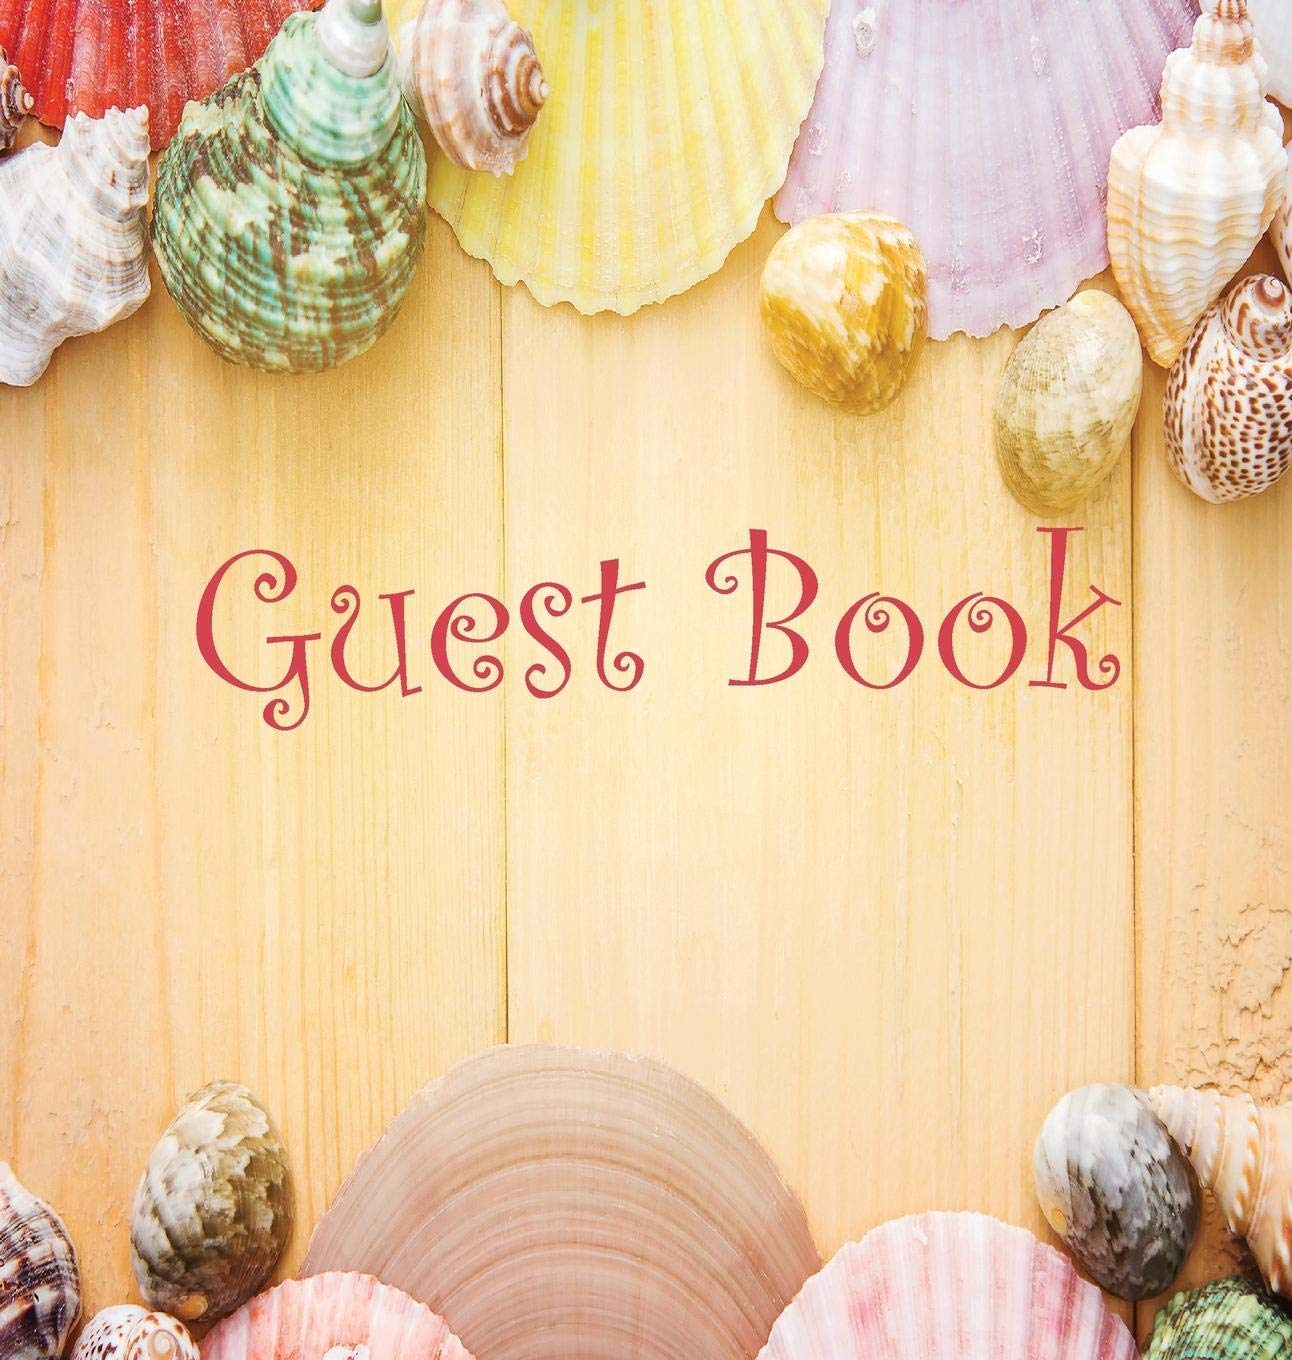 Guest Book, Visitors Book, Guests Comments, Vacation Home Guest Book, Beach House Guest Book, Comments Book, Visitor Book, Nautical Guest Book, ... Centres, Family Holiday Guest Book (Hardback)